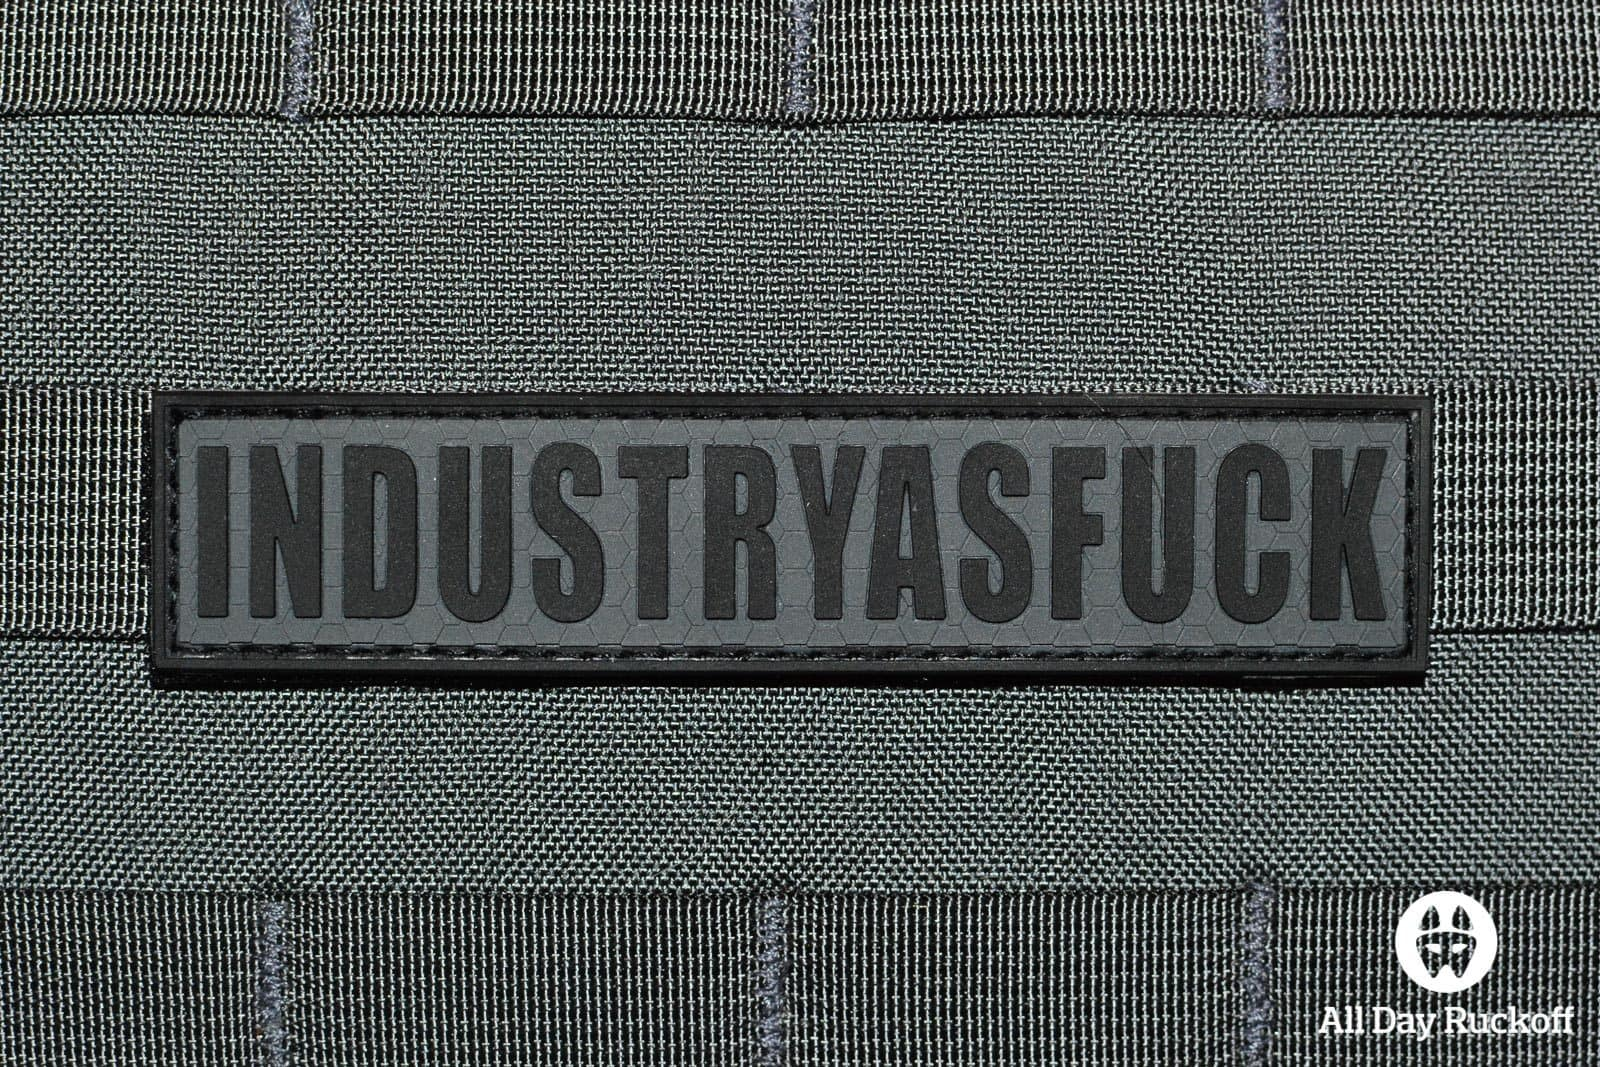 Gunstruction: Industry As Fuck